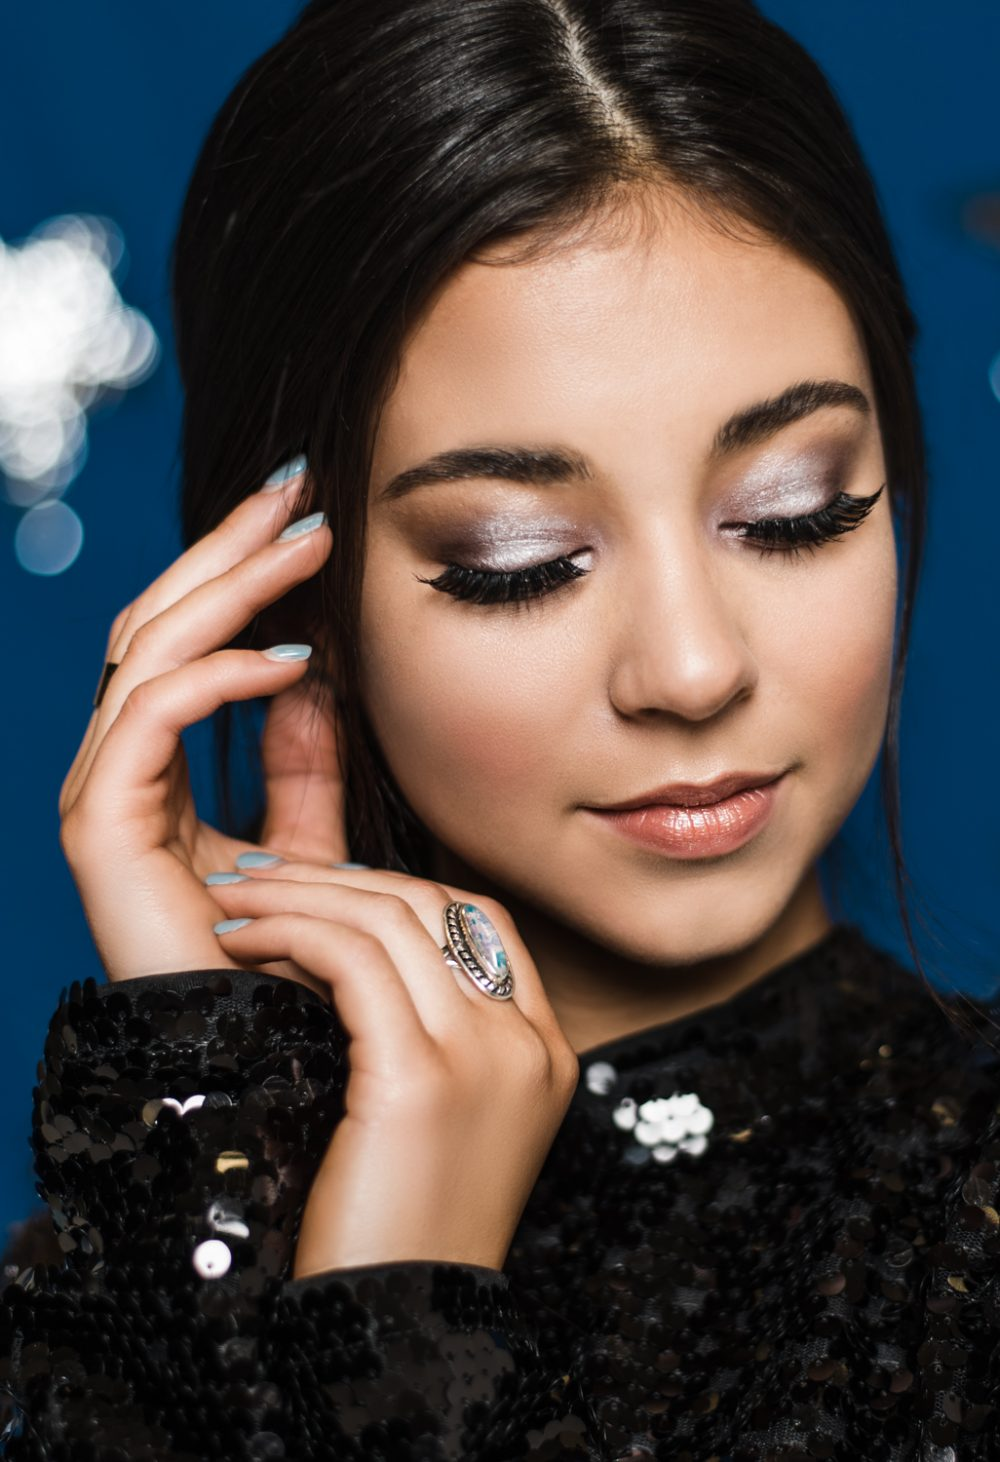 Beauty Portrait Professional Makeup HMUA Astronomy Themed Fashion Utah Fashion Portrait Beauty Photographer